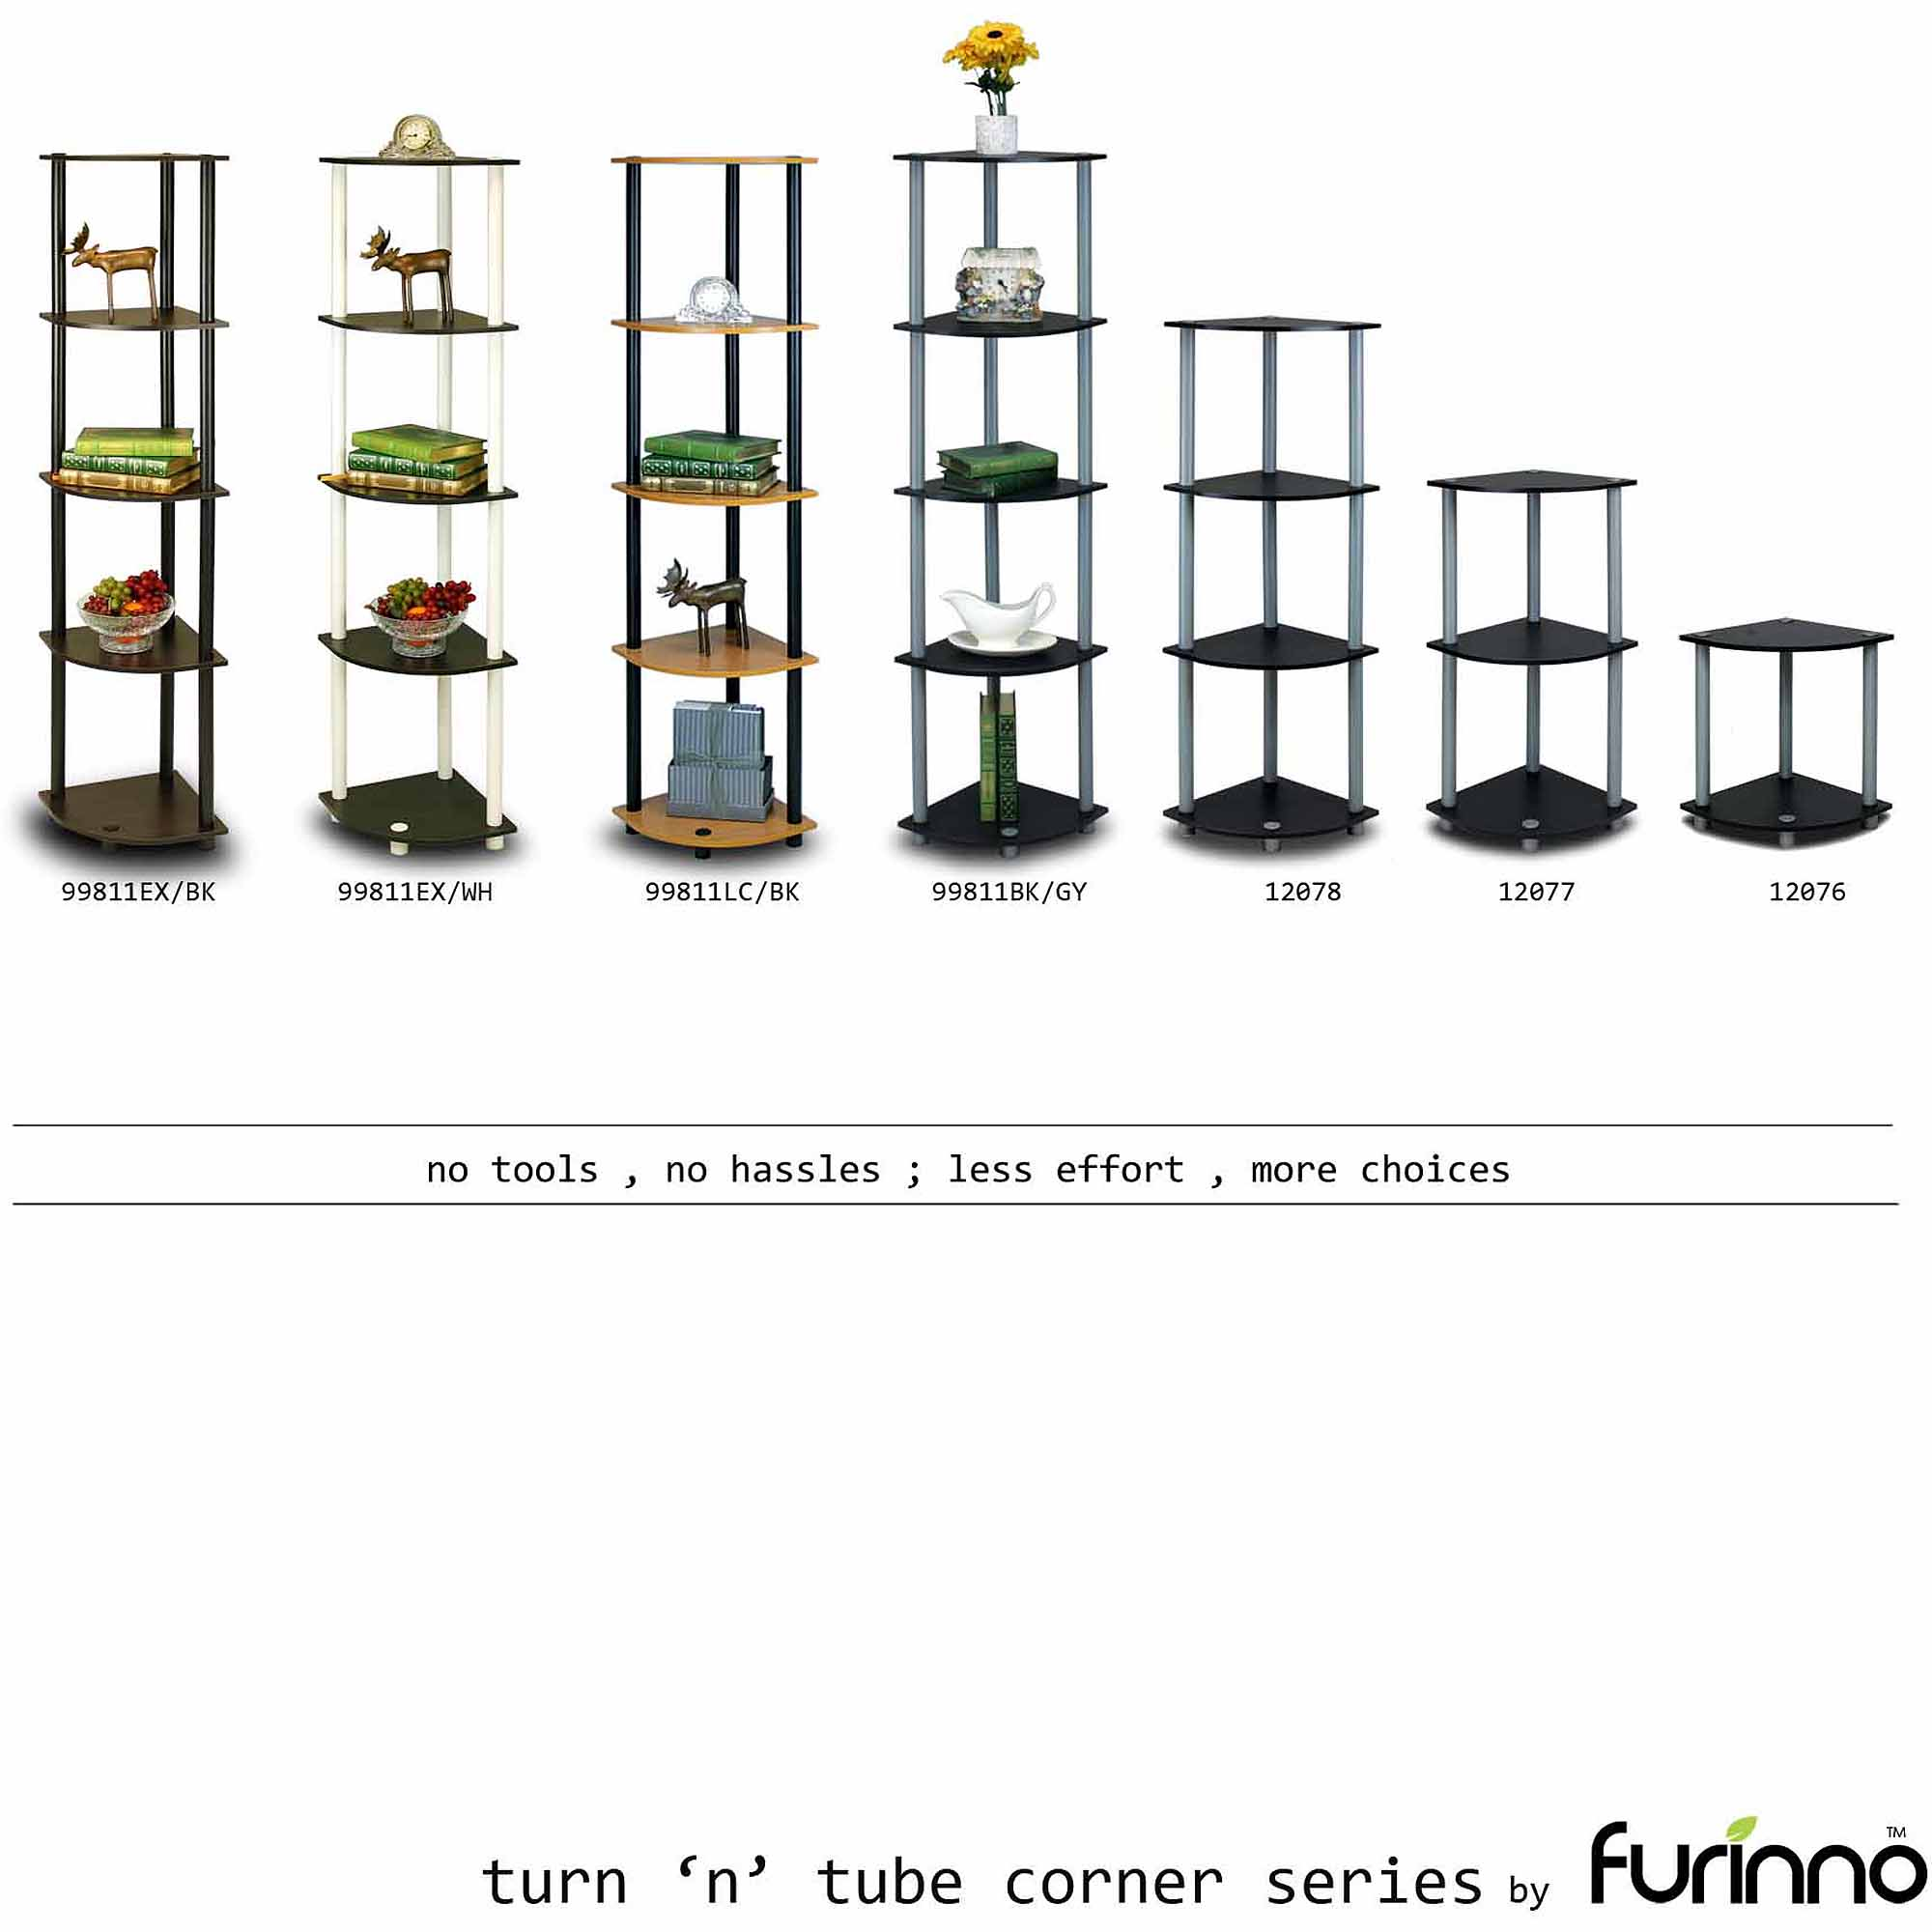 Furinno 99811 Turn-N-Tube 5-Tier Corner Display Rack Multipurpose Shelving Unit by Furinno